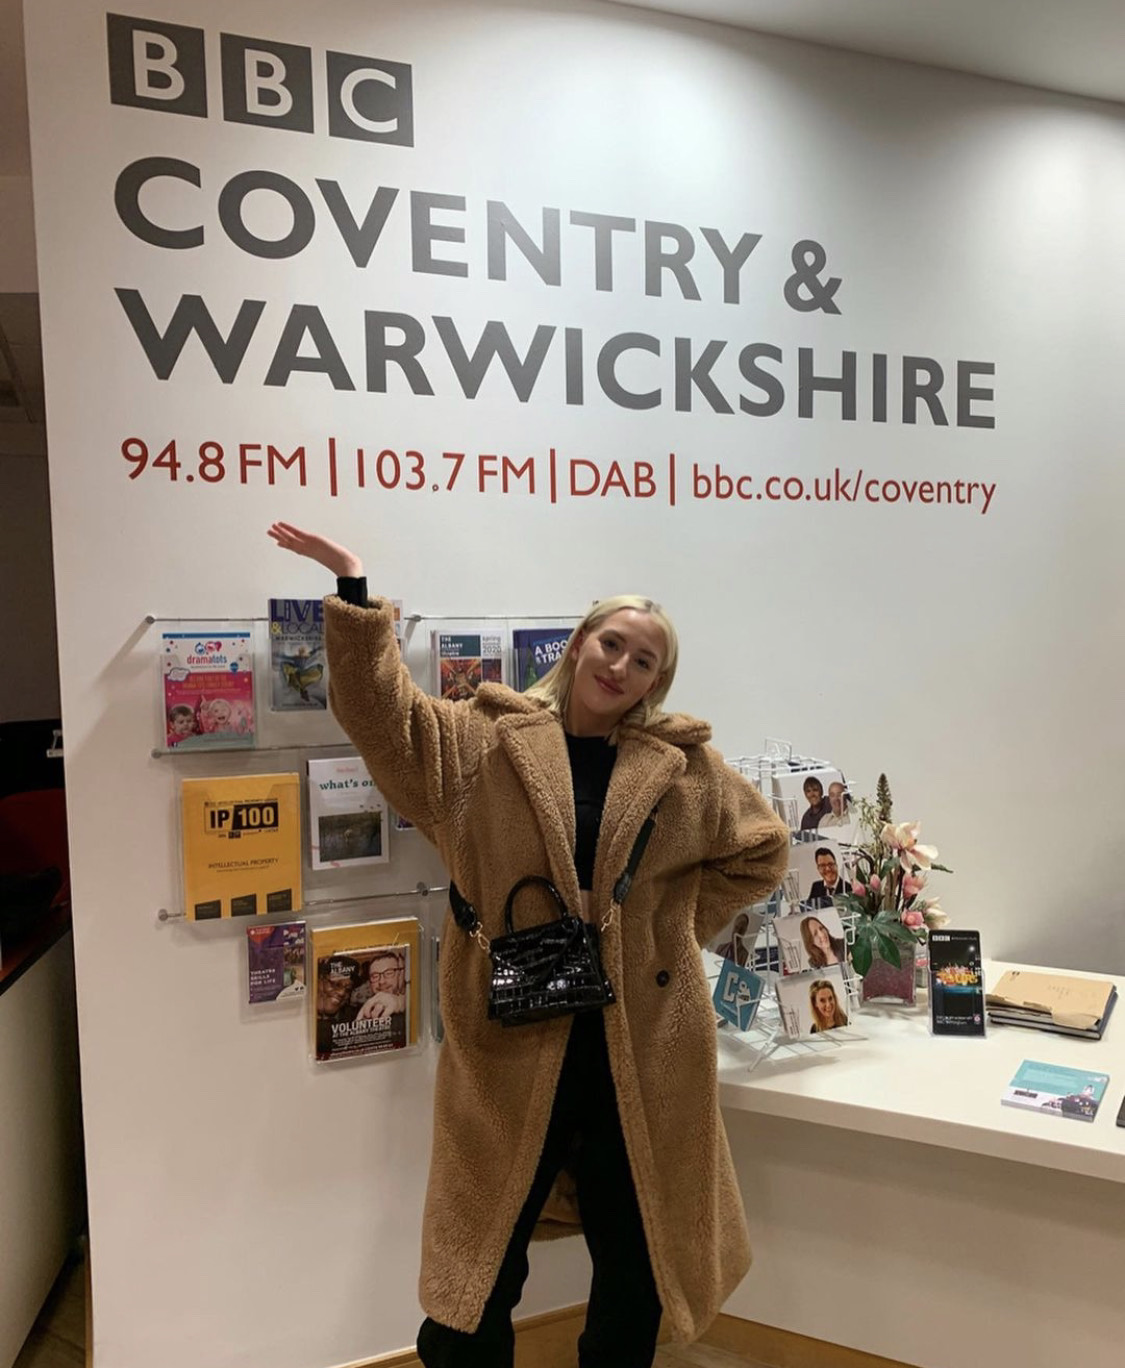 Alise Murray stands infront of BBC Coventry and Warwichshire sign with a teddy bag jacket on after securing a role as a radio presenter/ DJ.